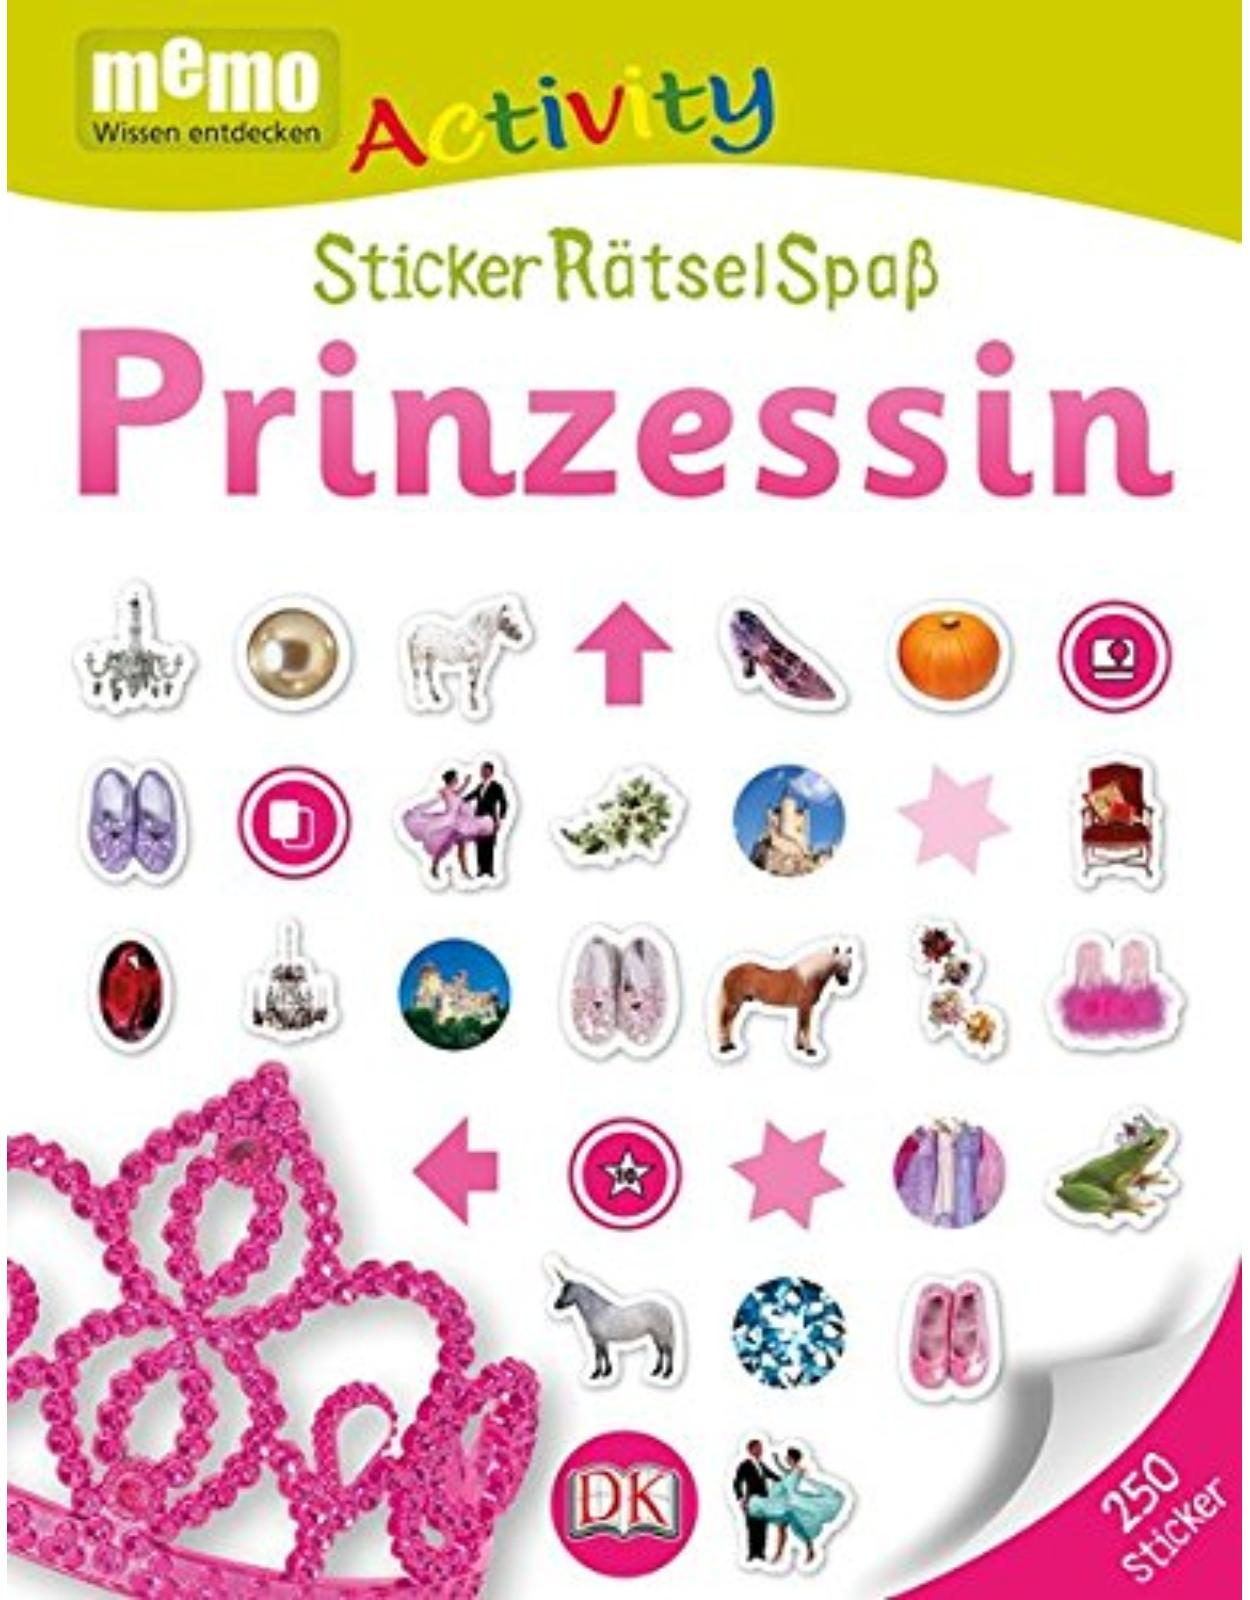 Memo Activity. Prinzessin: StickerRätselSpaß